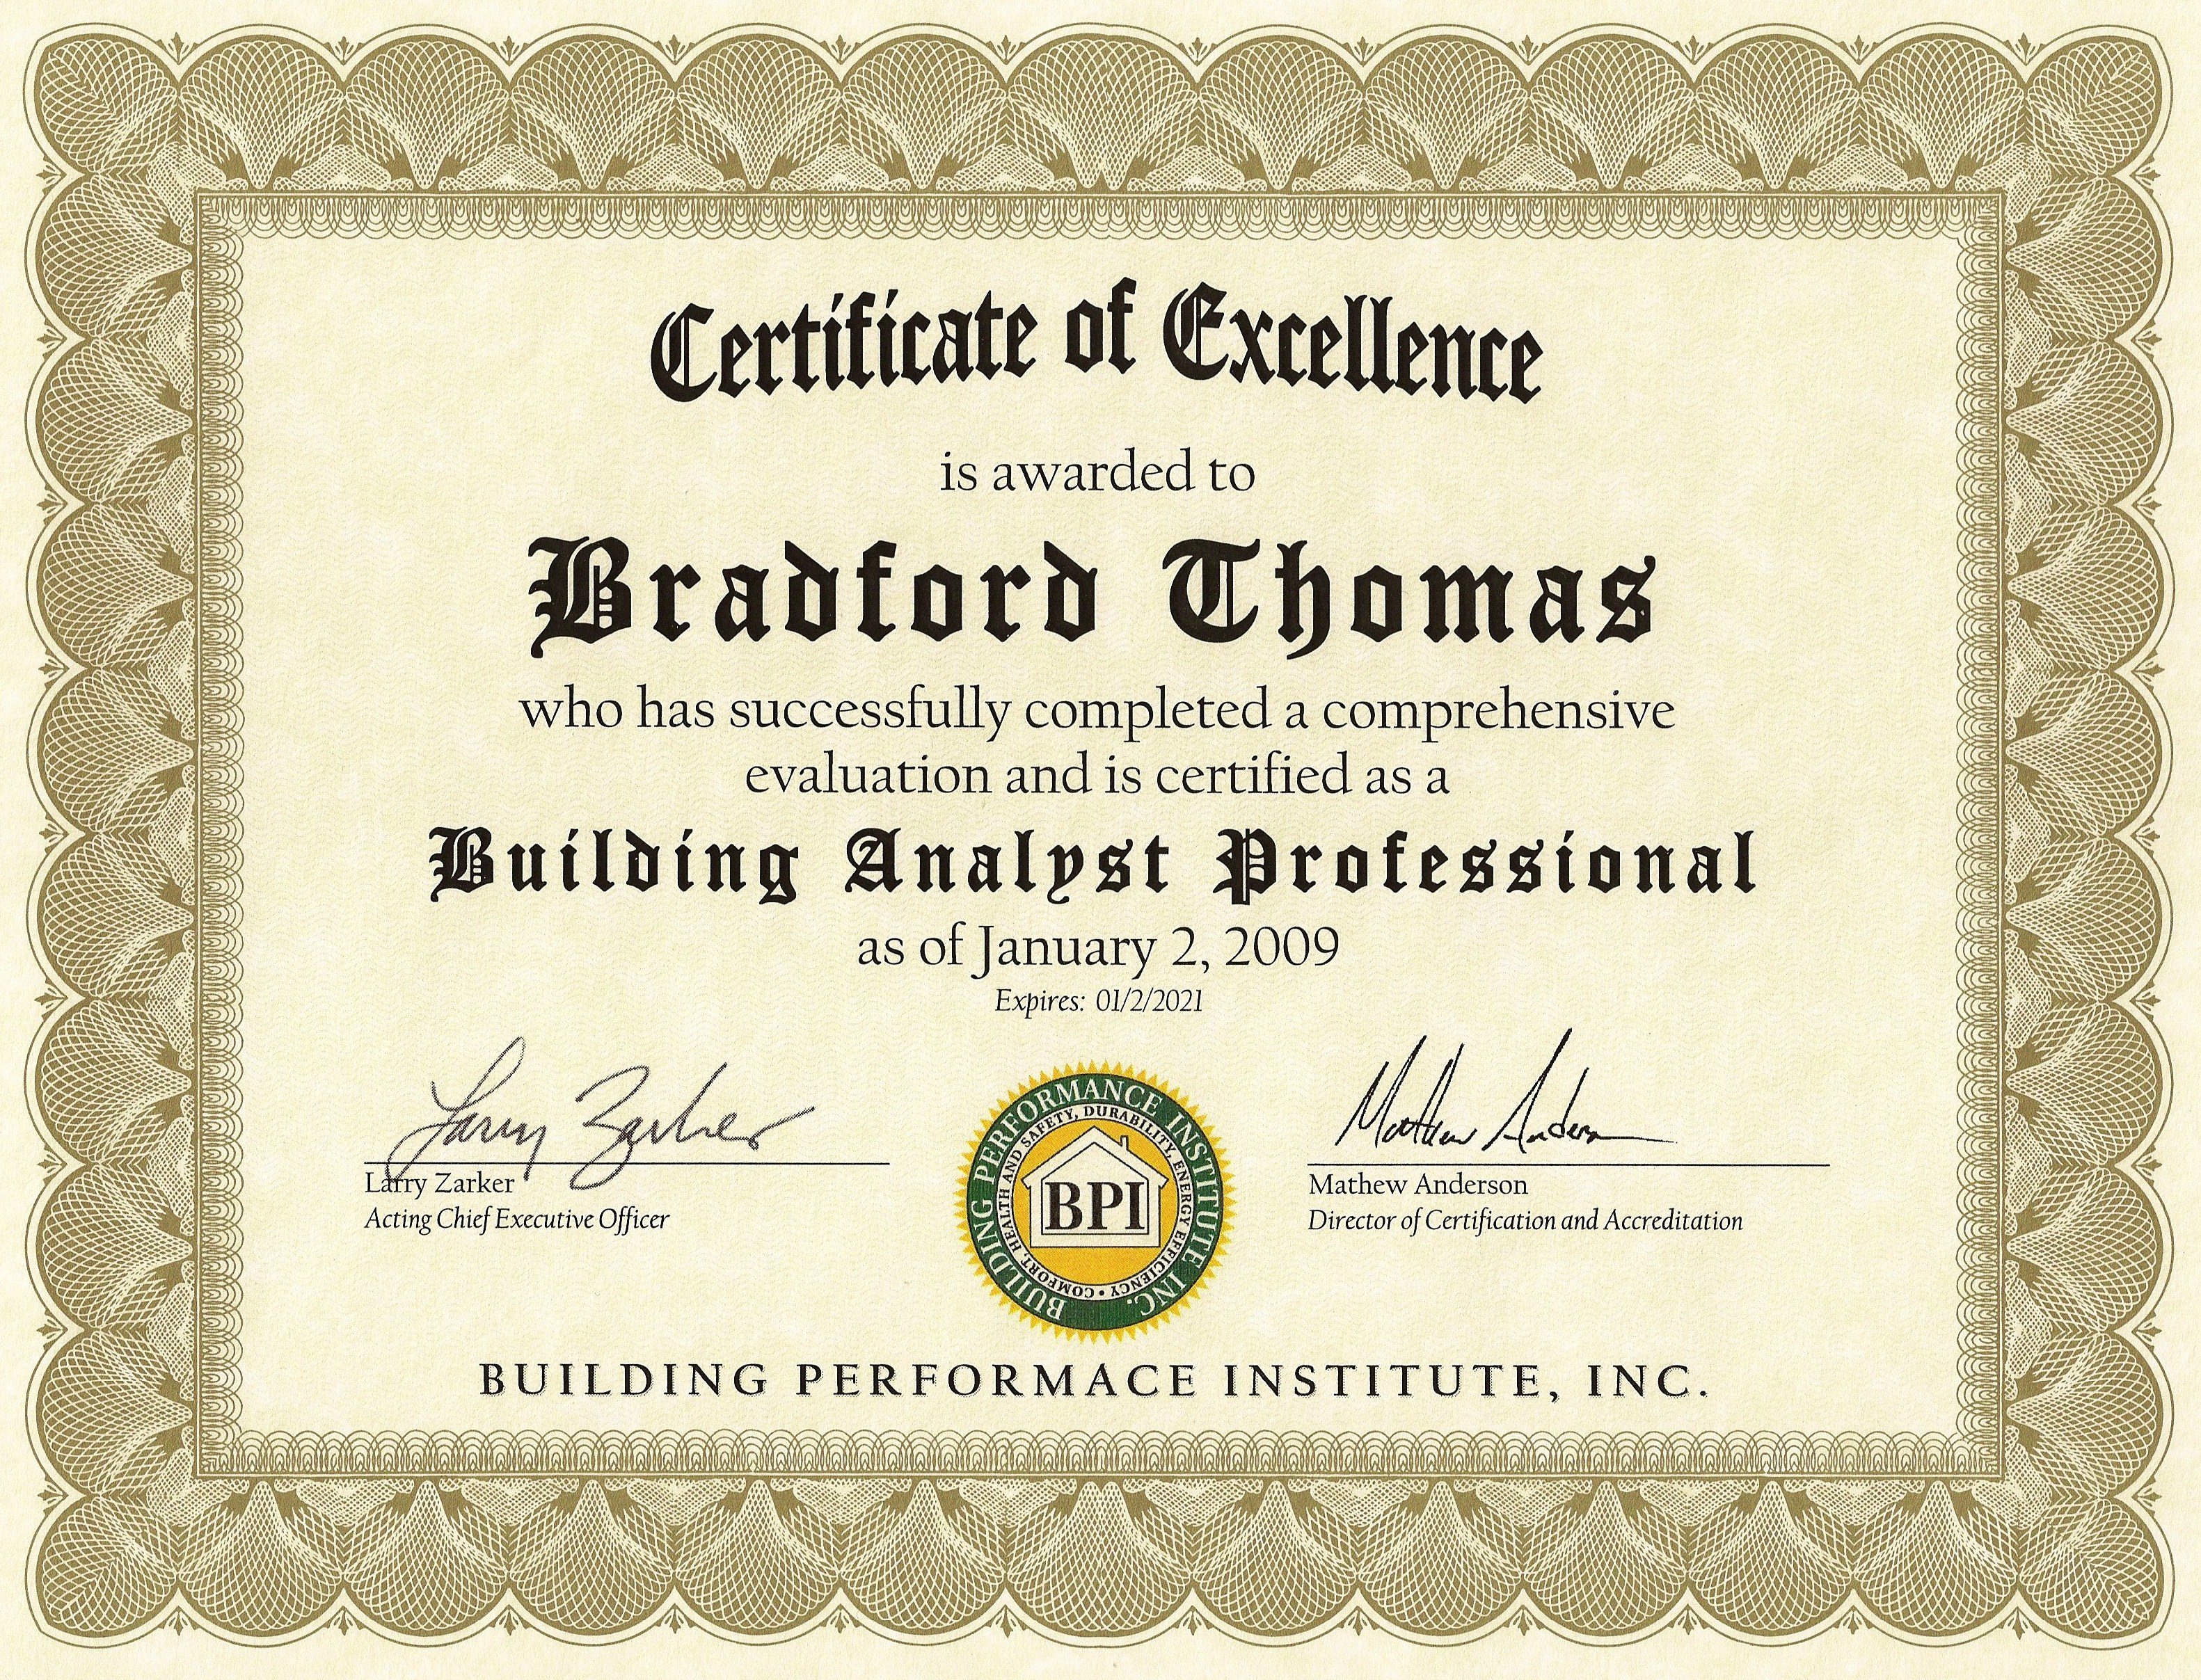 Thomas building solutions llc for Certified professional building designer